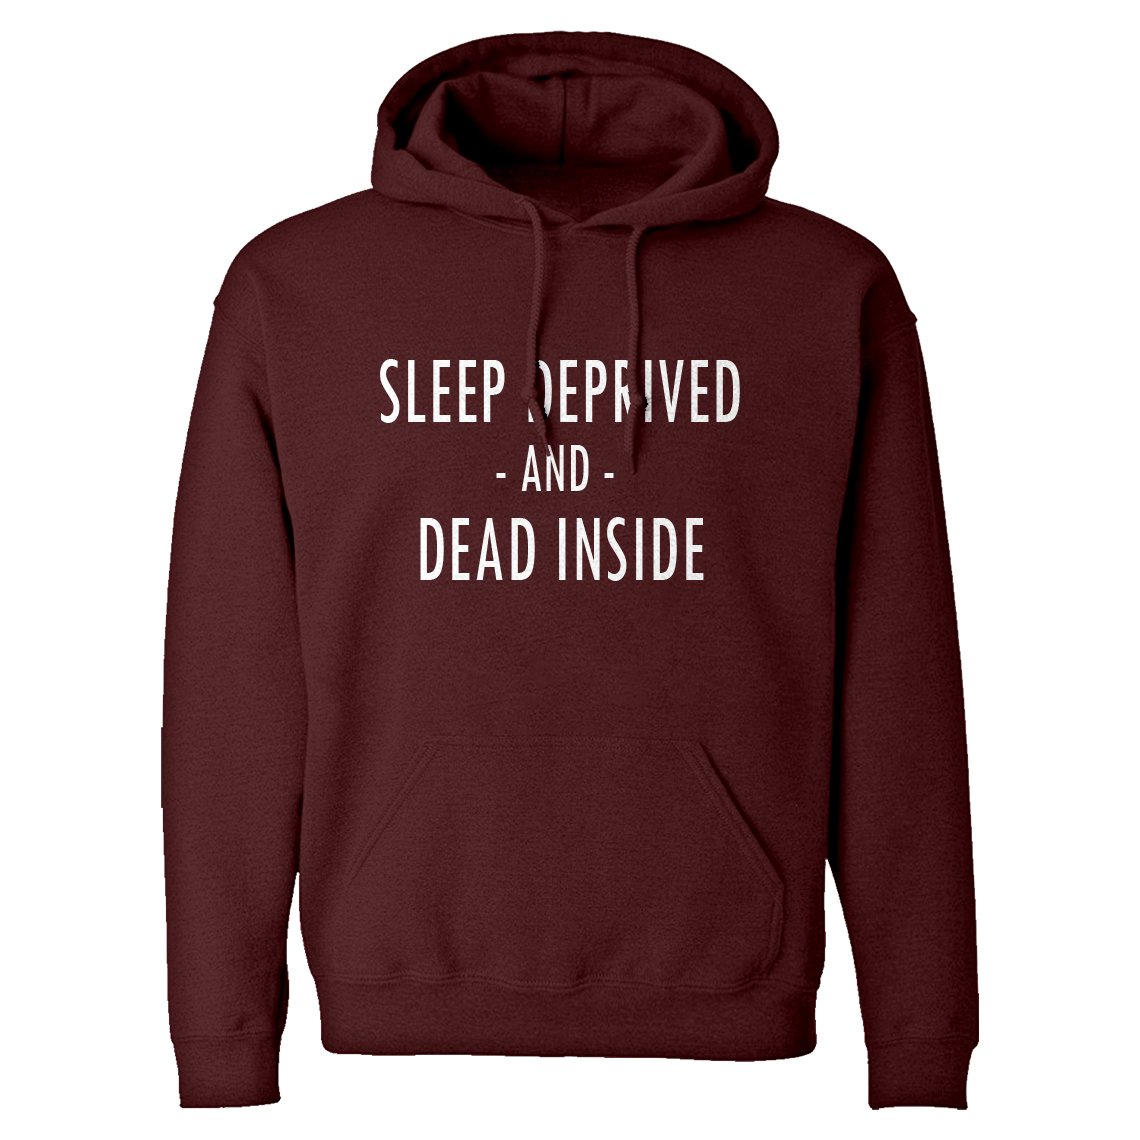 Sleep Deprived And Dead Inside Unisex Adult Shirts